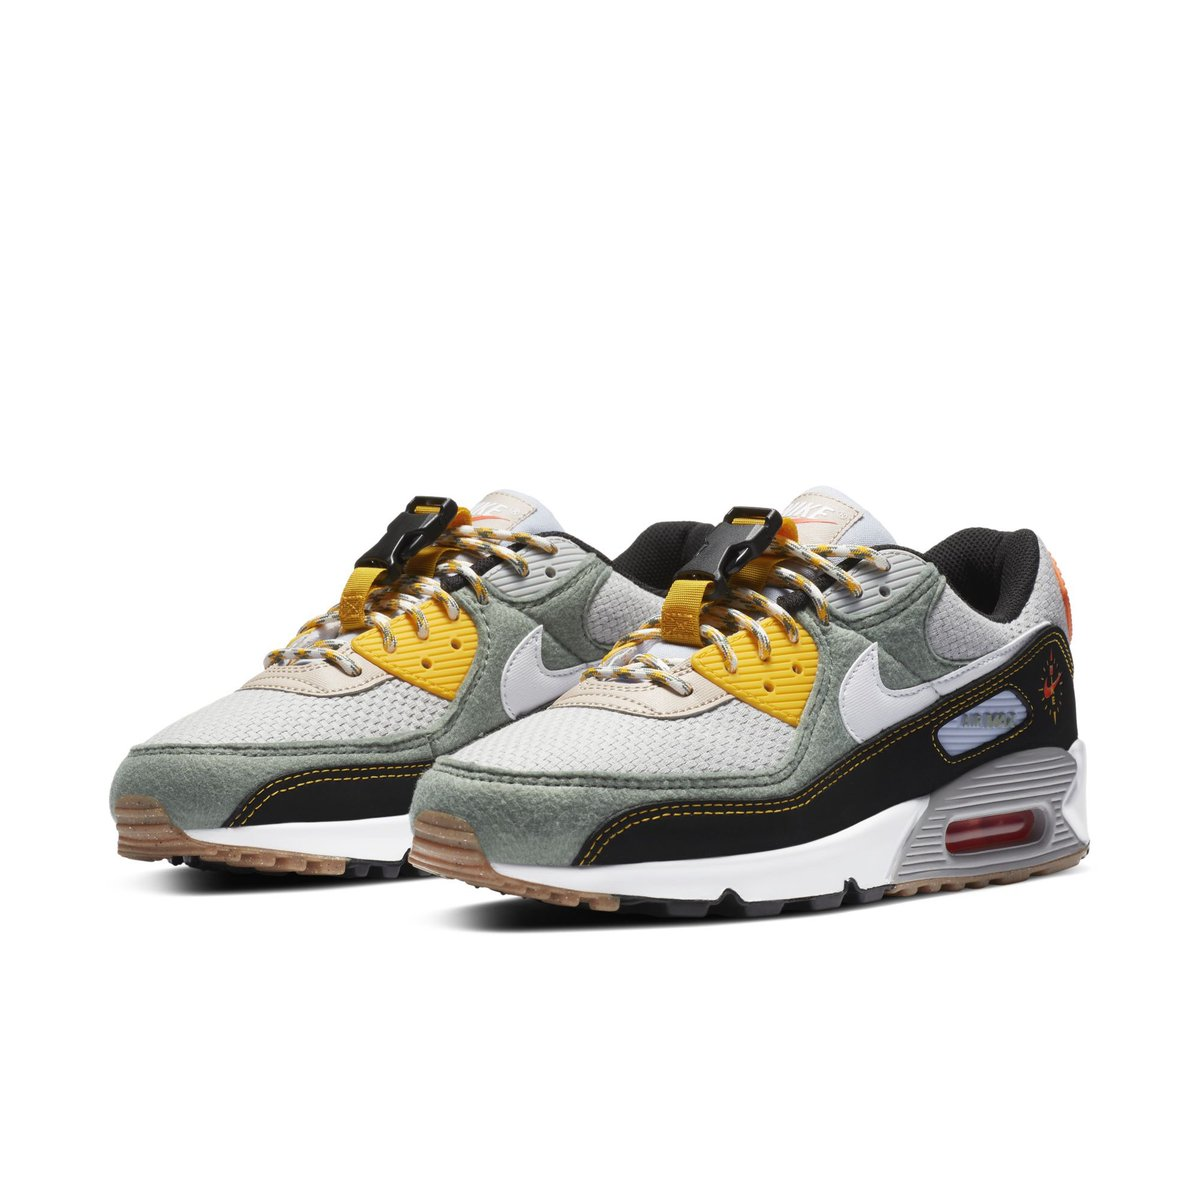 Replying to @snkr_twitr: Nike Air Max 90 'Compass' official images   📷 via @US_11